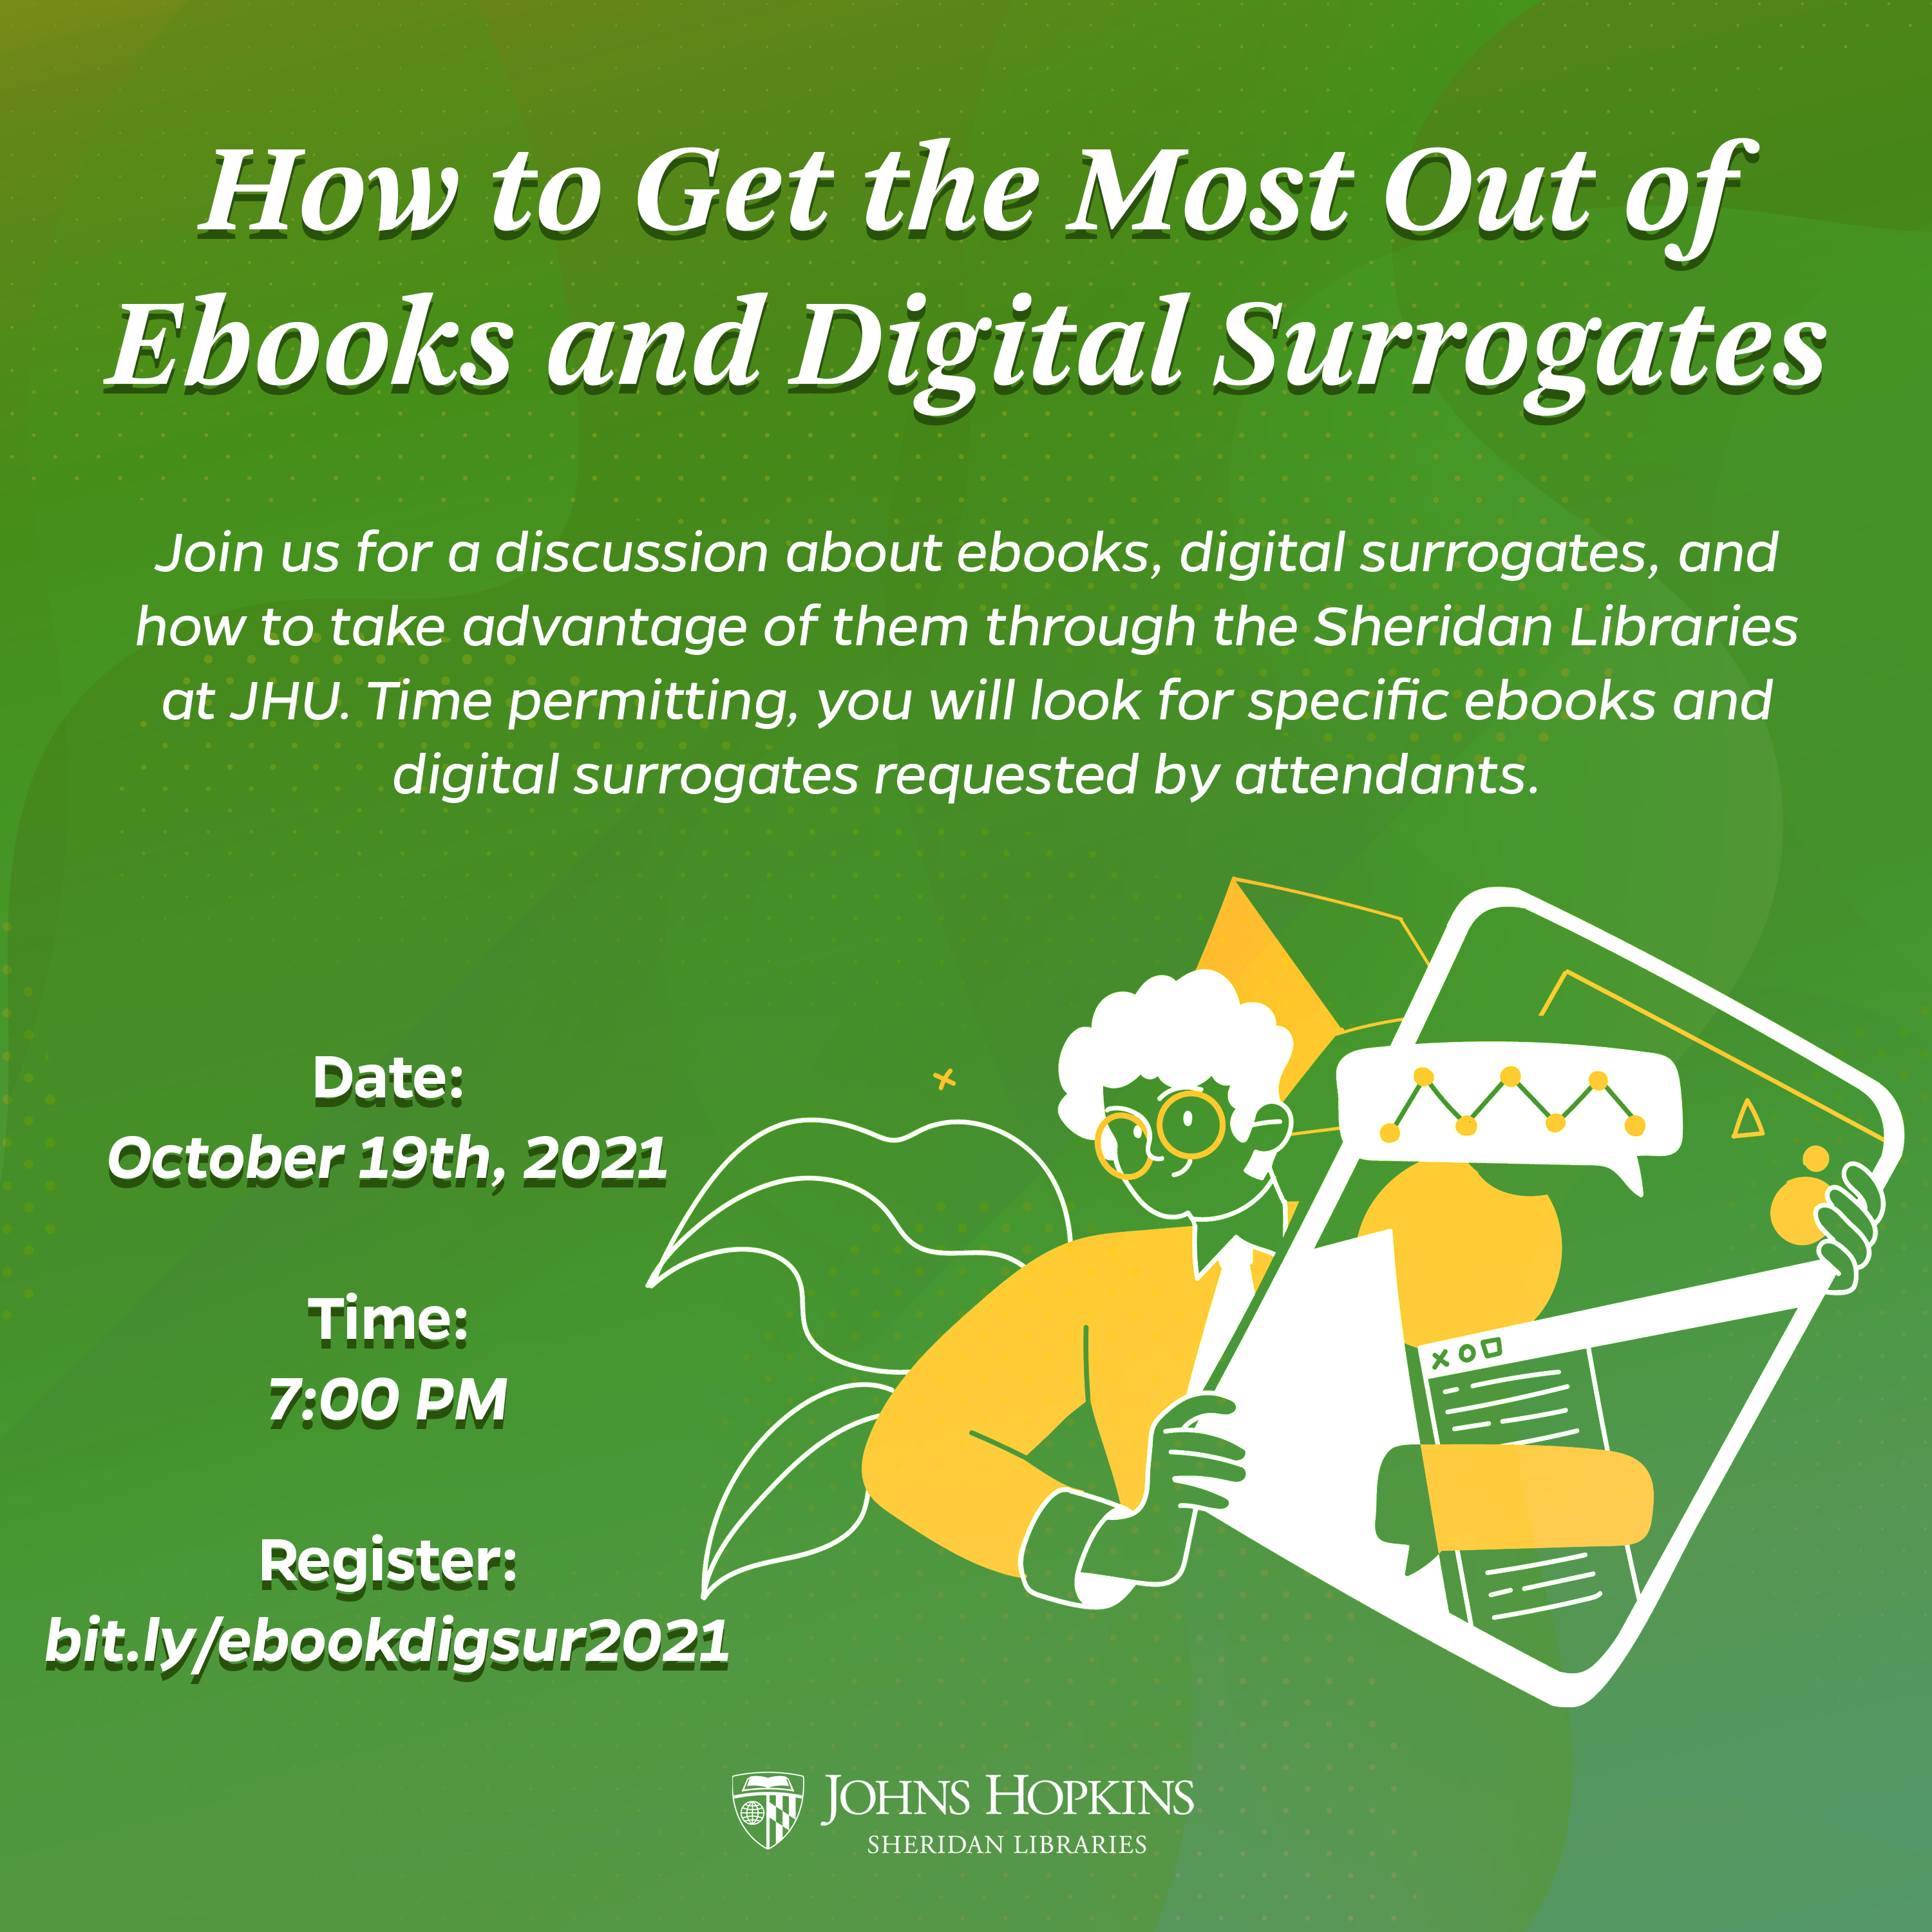 How to Get the Most Out of Ebooks and Digital Surrogates